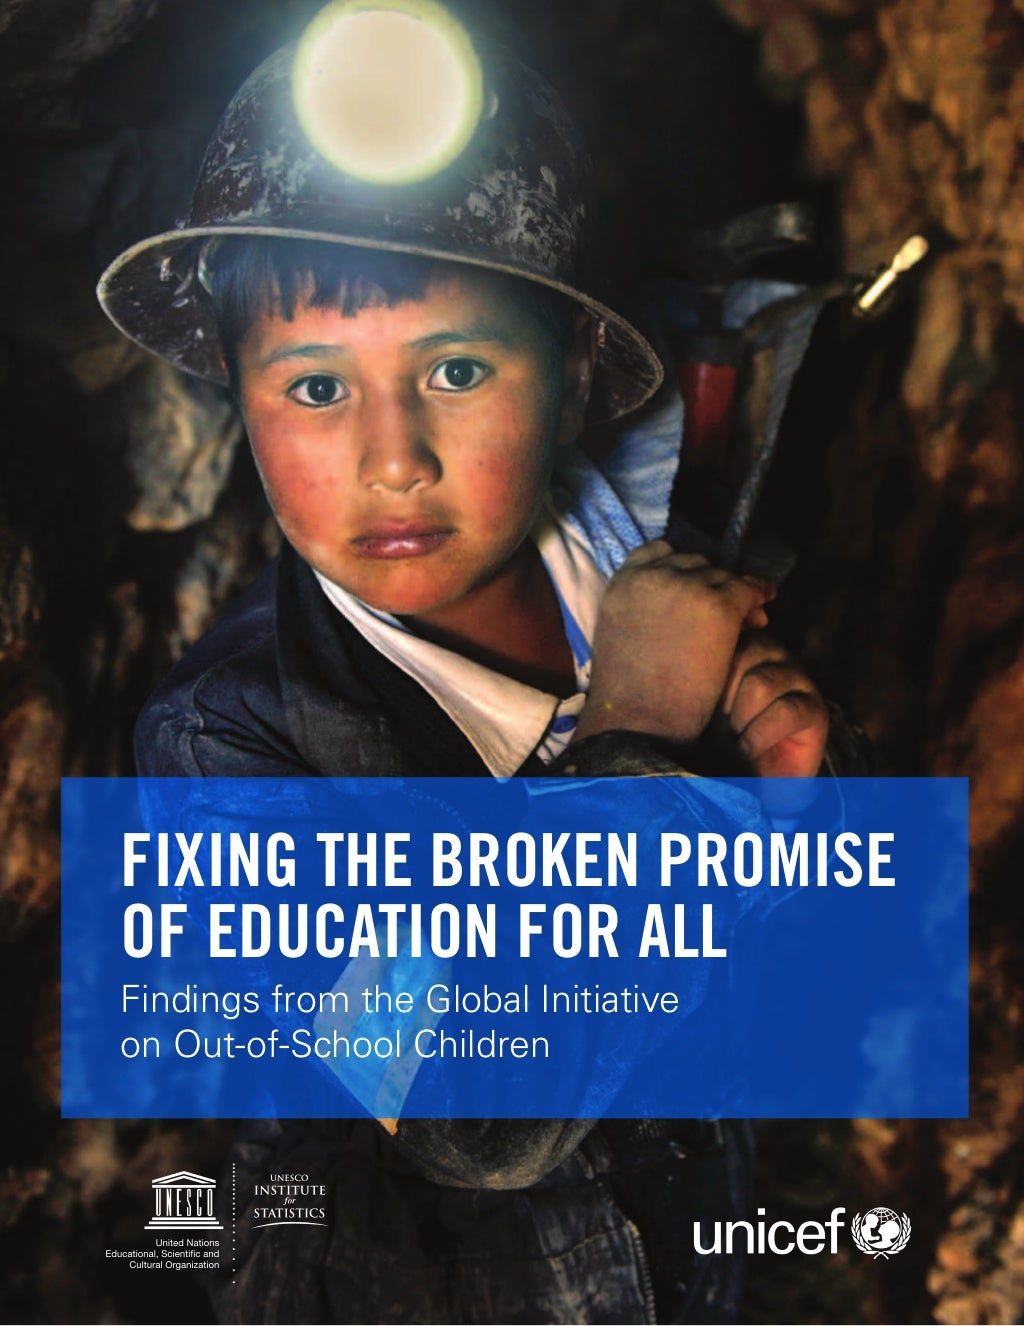 Fixing the Broken Promise of Education for All